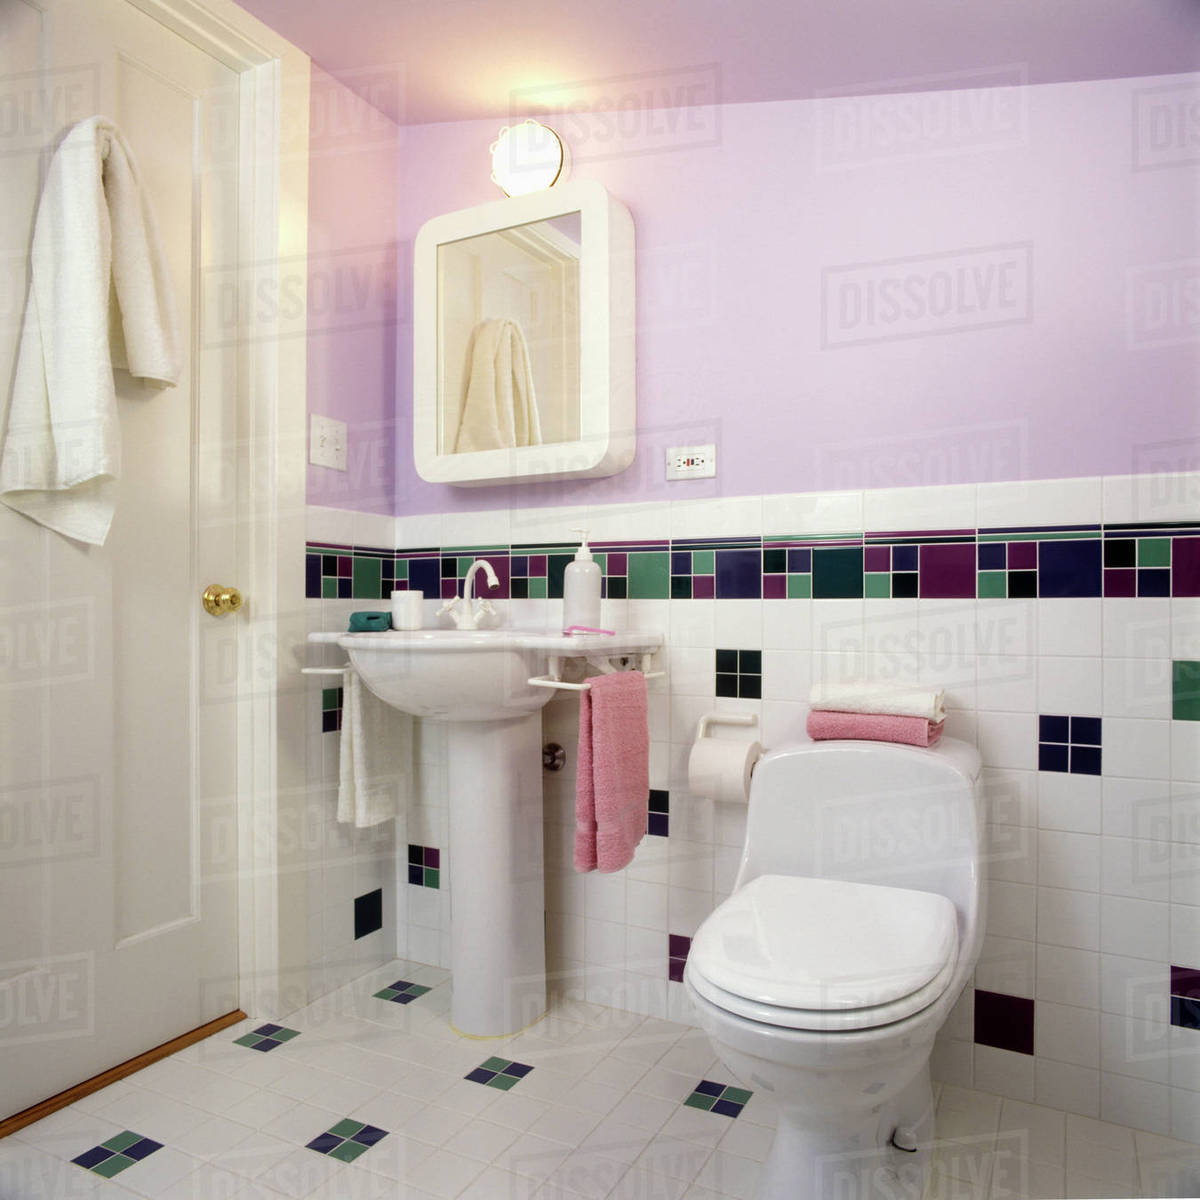 Contemporary bath in lavender and white with pedestal sink, partial tiled wall with checkered pattern in green, violet and purple, wall mounted medicine ...